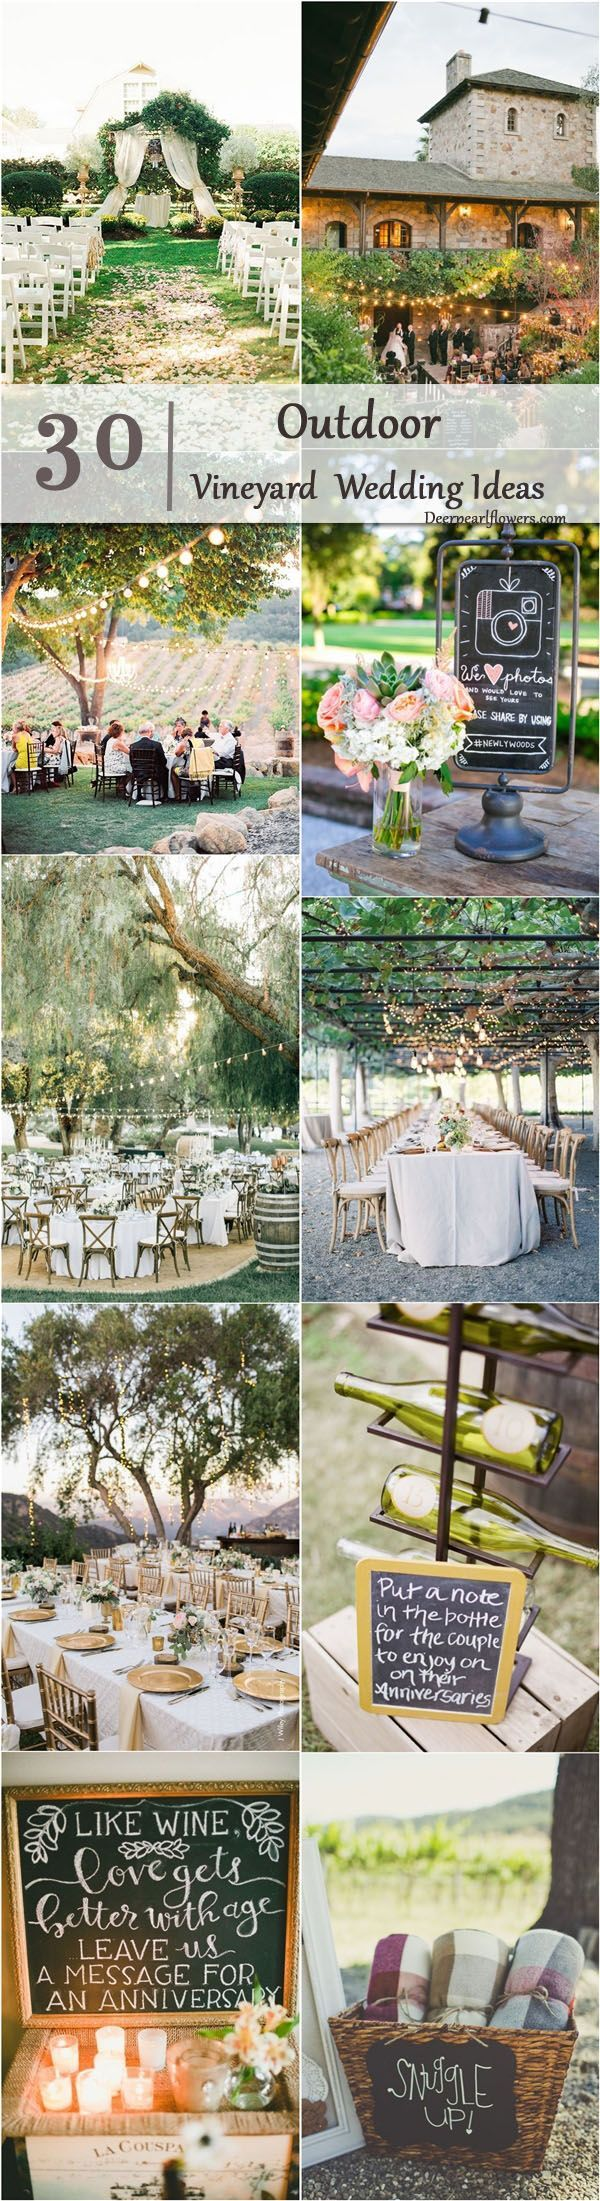 best Vineyard Weddings images on Pinterest  Blue ridge